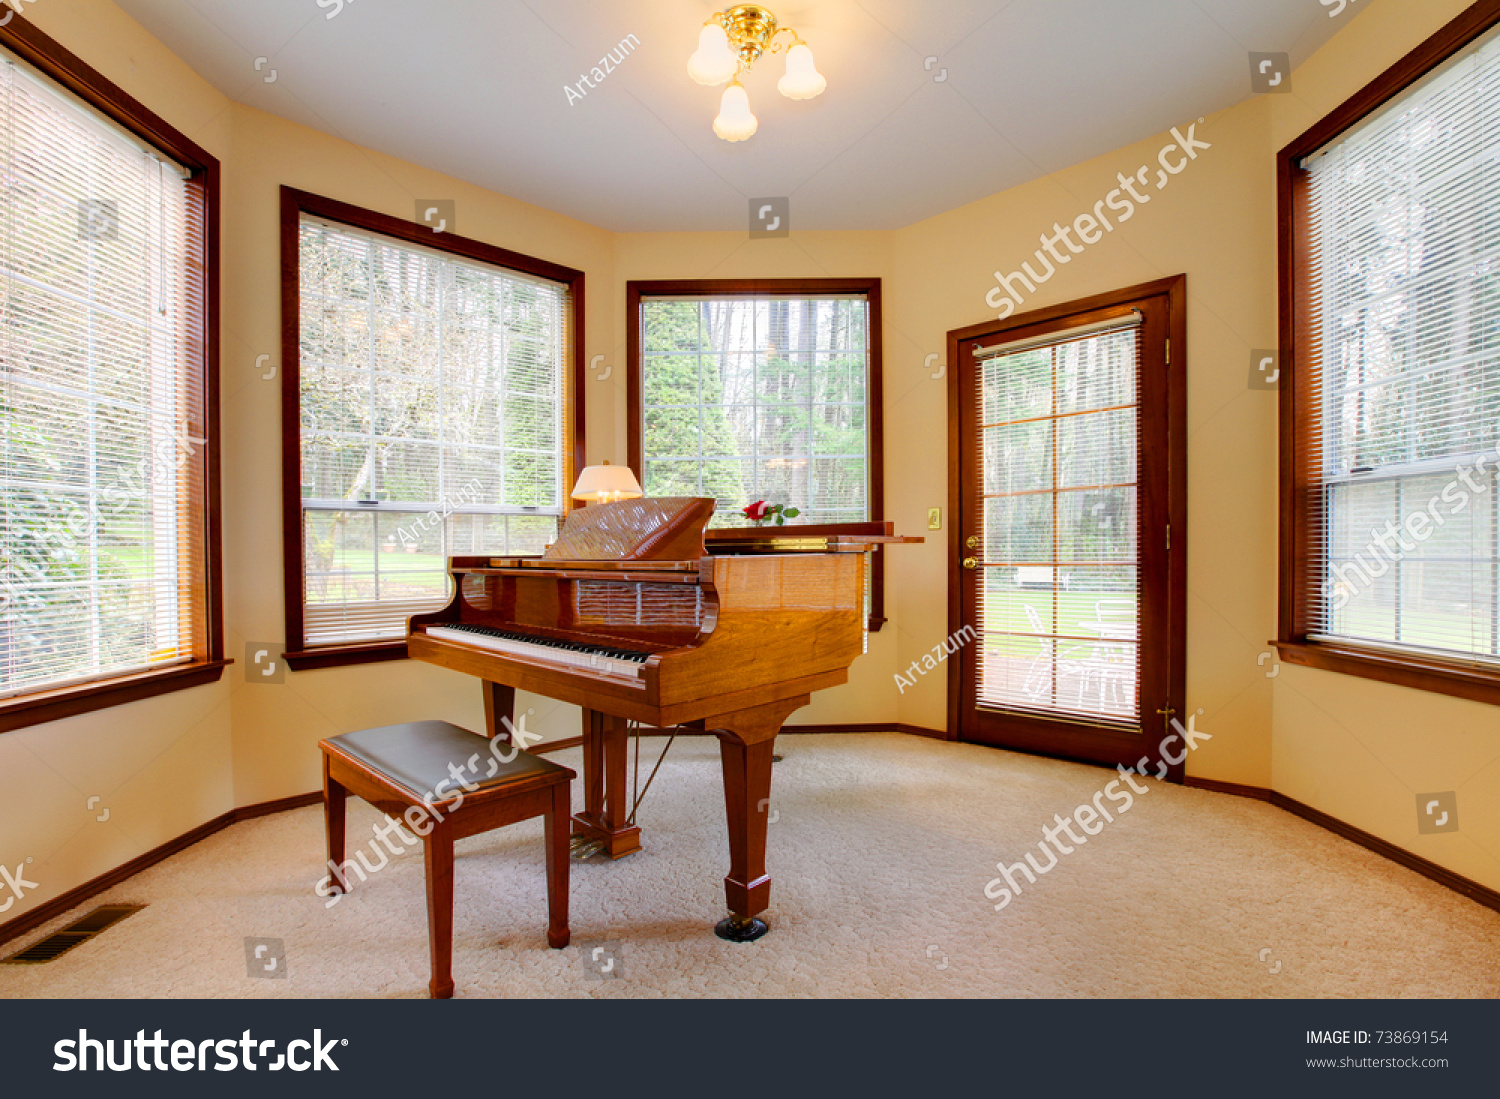 Piano Room With Yellow Walls And Many Windows Stock Photo